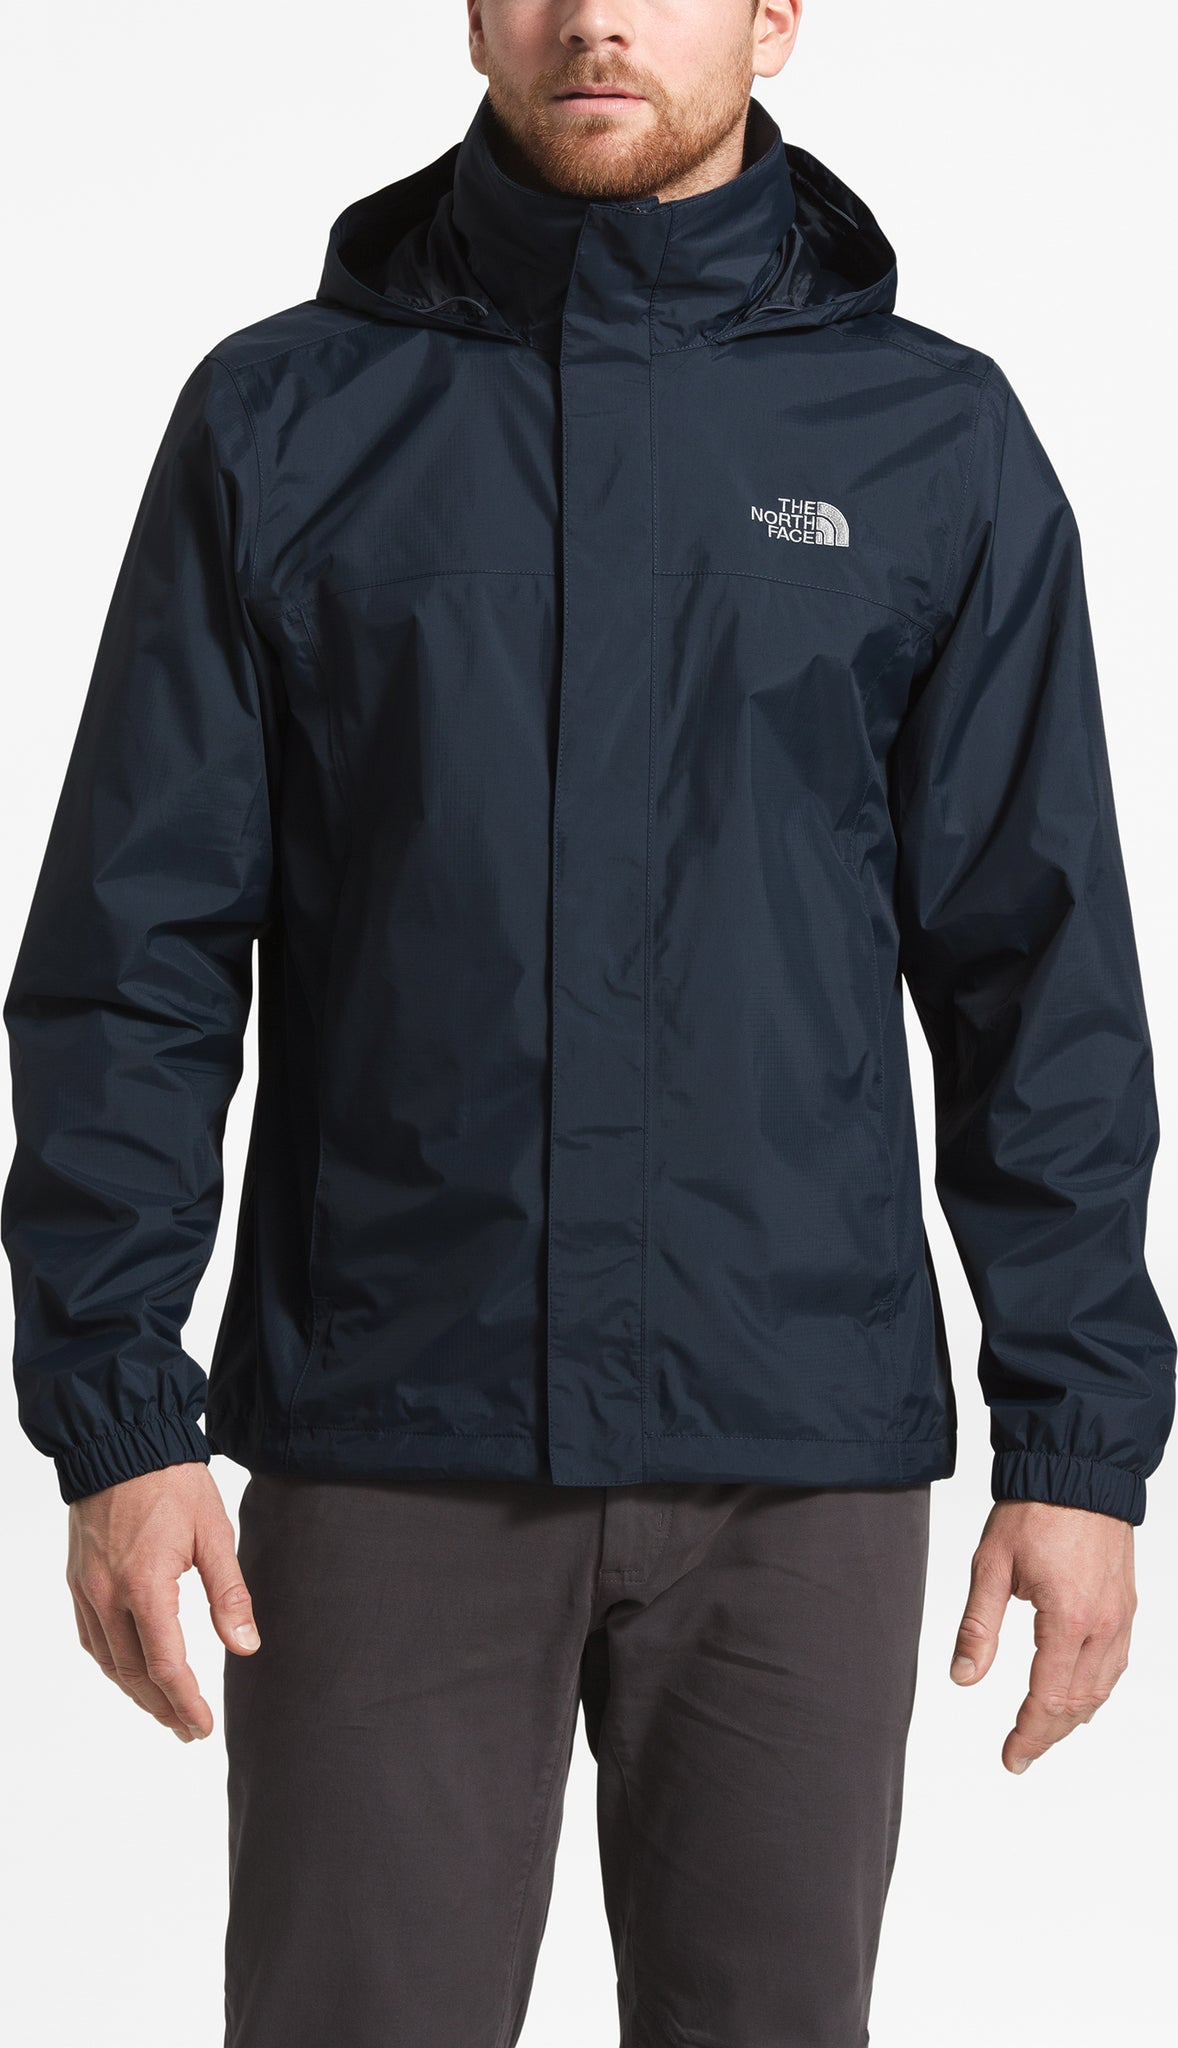 64cafba9dcb3 The North Face Resolve 2 Jacket - Men s